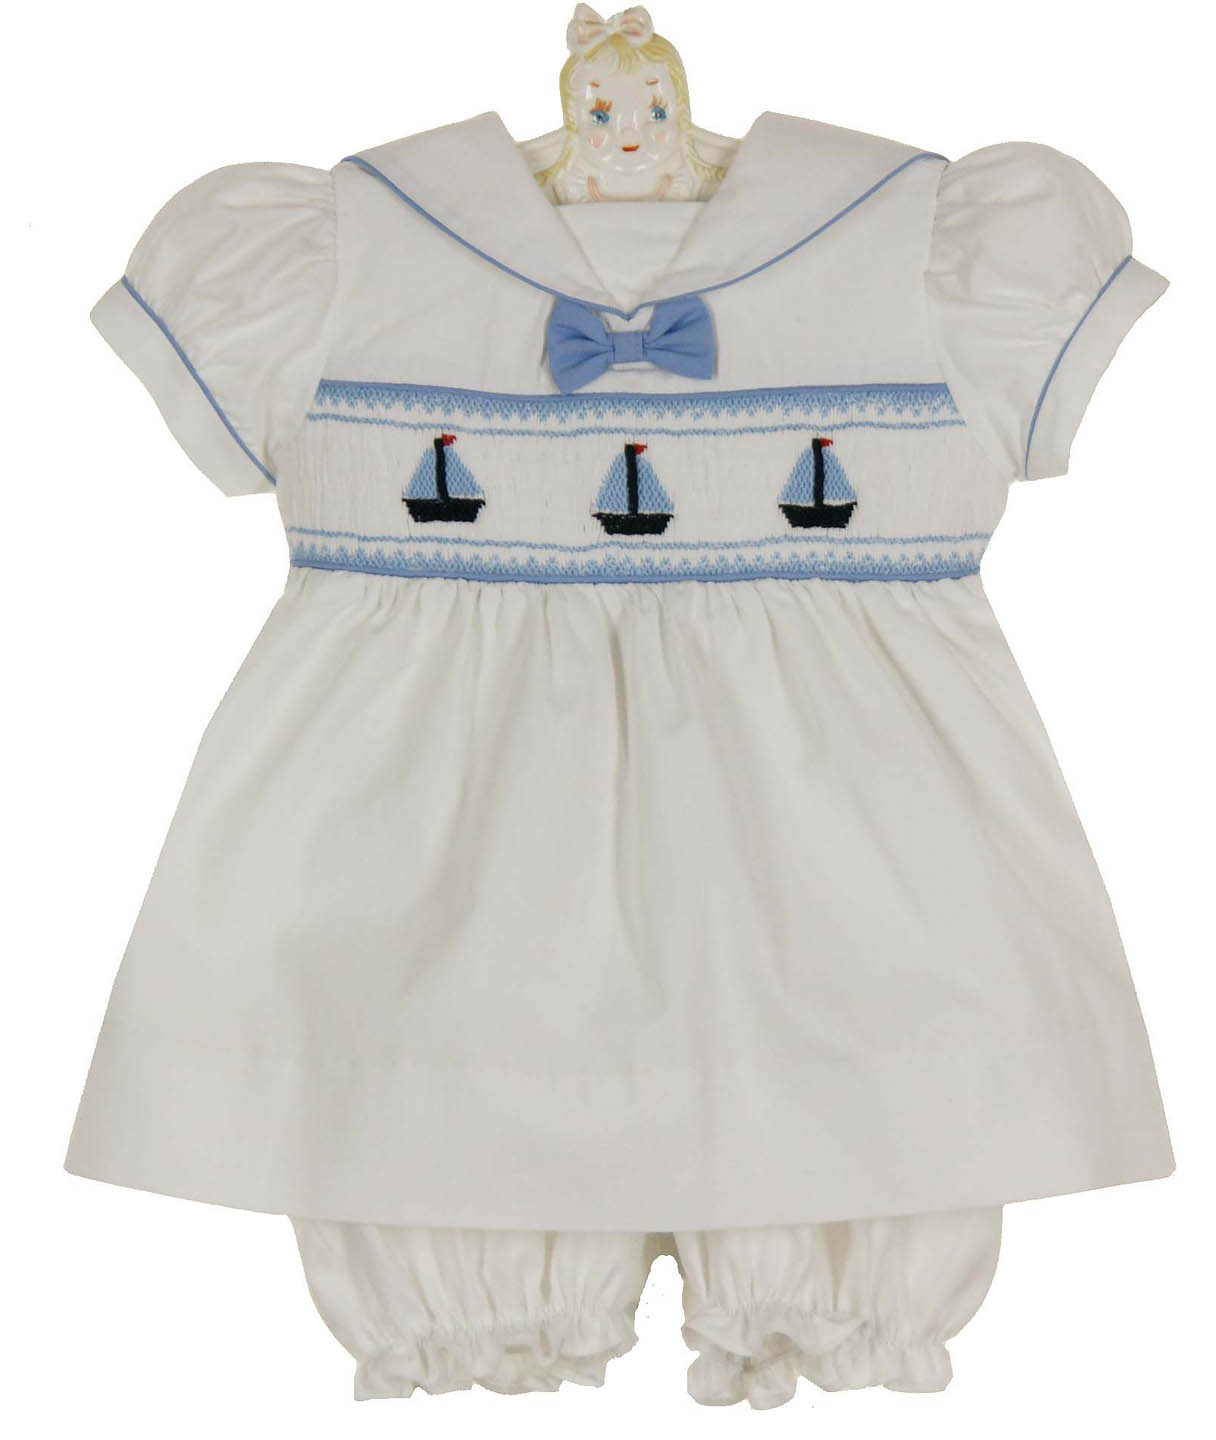 Carriage Boutique white smocked dress and bloomers with ...